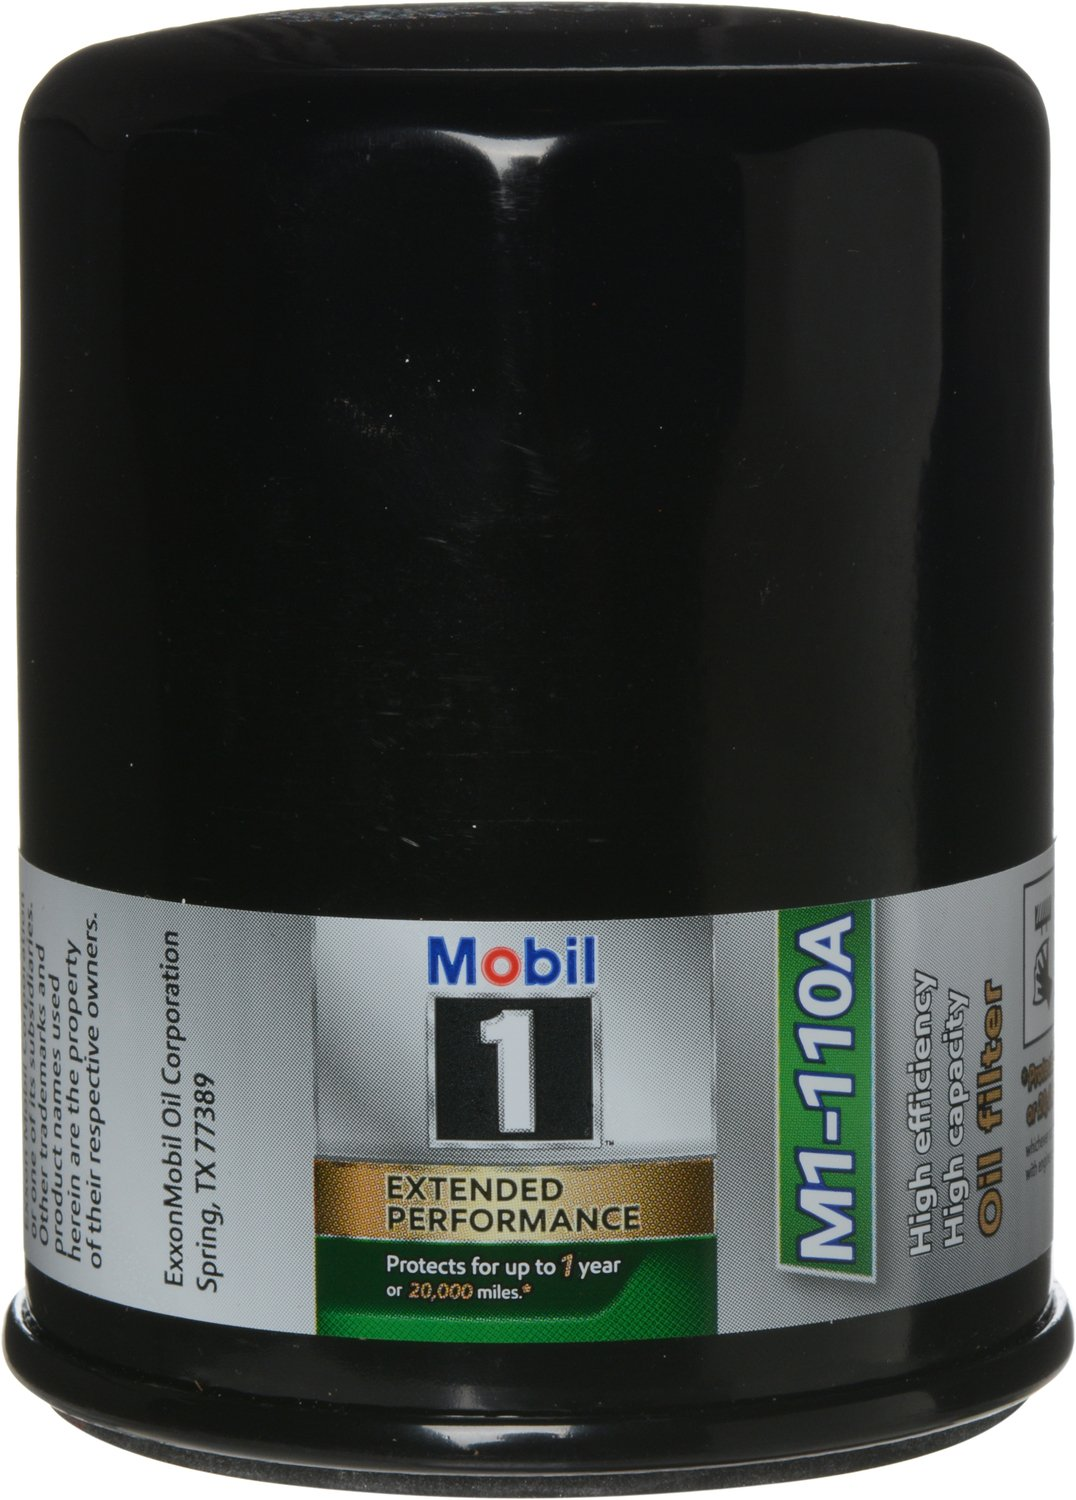 Mobil 1 M1-110 / M1-110A Extended Performance Oil Filter, Pack of 6 by Mobil 1